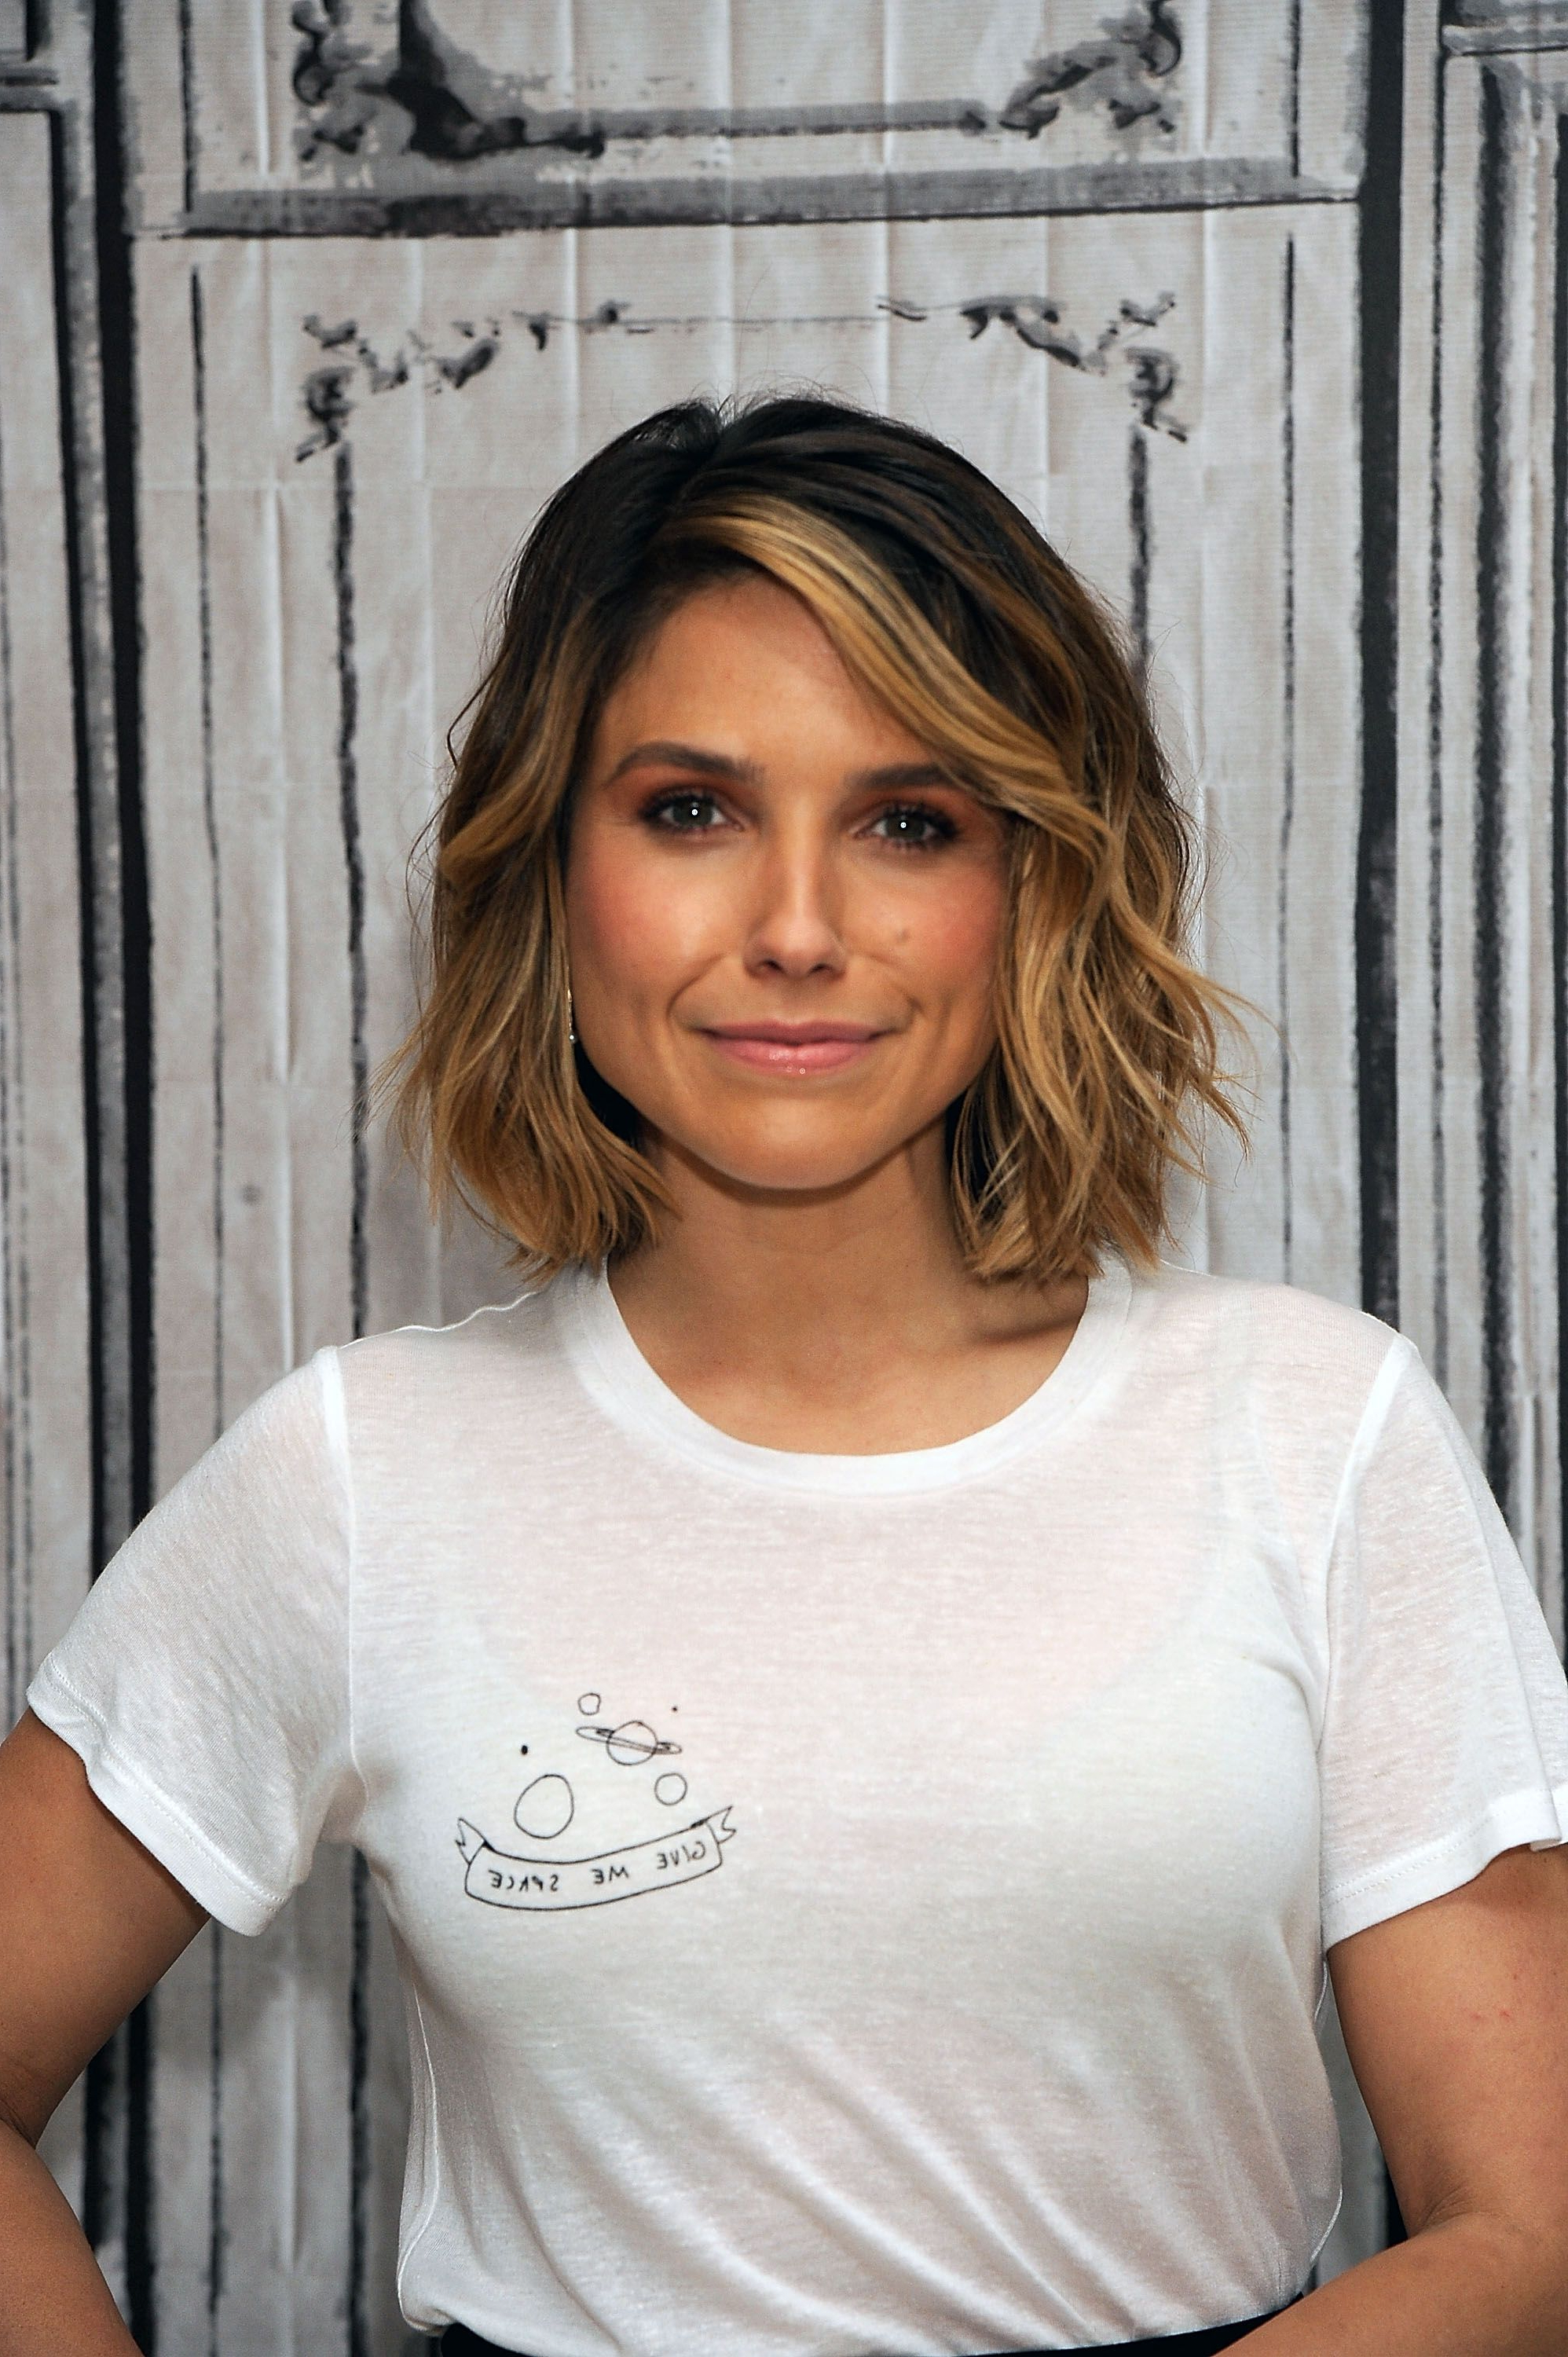 The 27 Biggest Hair Color Trends Of The Year | Haircuts | Pinterest Inside Sophia Bush Short Hairstyles (View 7 of 25)